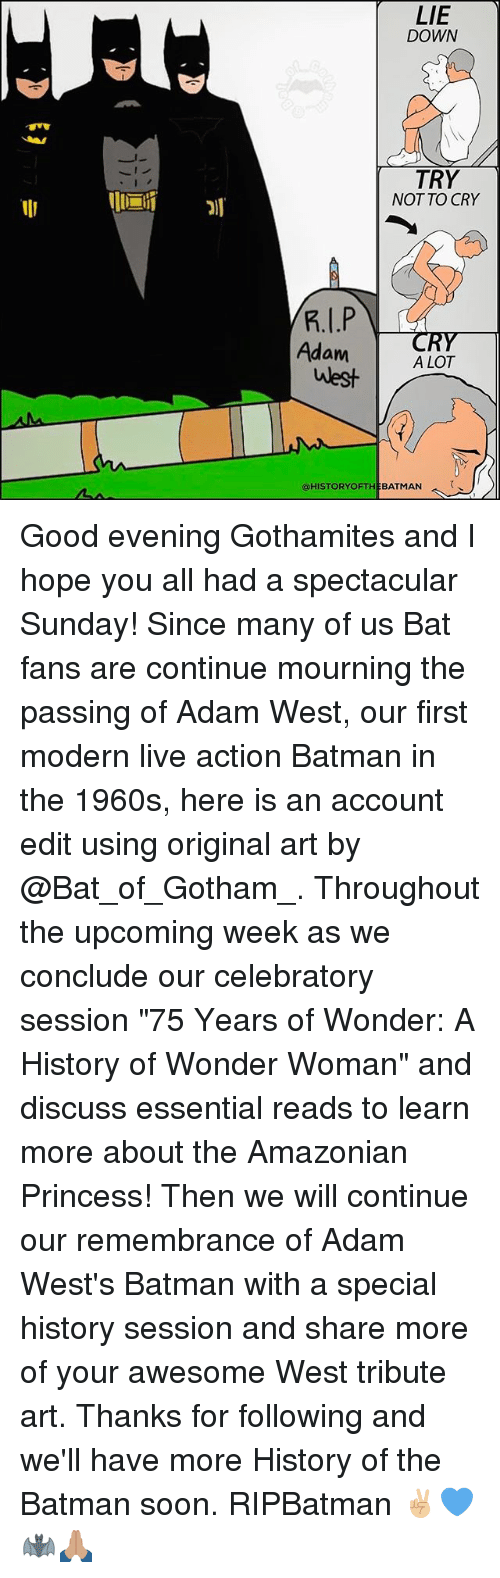 """using: AMA  LIE  DOWN  TRY  NOT TO CRY  Adam  A LOT  west  @HISTORY OFTHE BATMAN Good evening Gothamites and I hope you all had a spectacular Sunday! Since many of us Bat fans are continue mourning the passing of Adam West, our first modern live action Batman in the 1960s, here is an account edit using original art by @Bat_of_Gotham_. Throughout the upcoming week as we conclude our celebratory session """"75 Years of Wonder: A History of Wonder Woman"""" and discuss essential reads to learn more about the Amazonian Princess! Then we will continue our remembrance of Adam West's Batman with a special history session and share more of your awesome West tribute art. Thanks for following and we'll have more History of the Batman soon. RIPBatman ✌🏼💙🦇🙏🏽"""